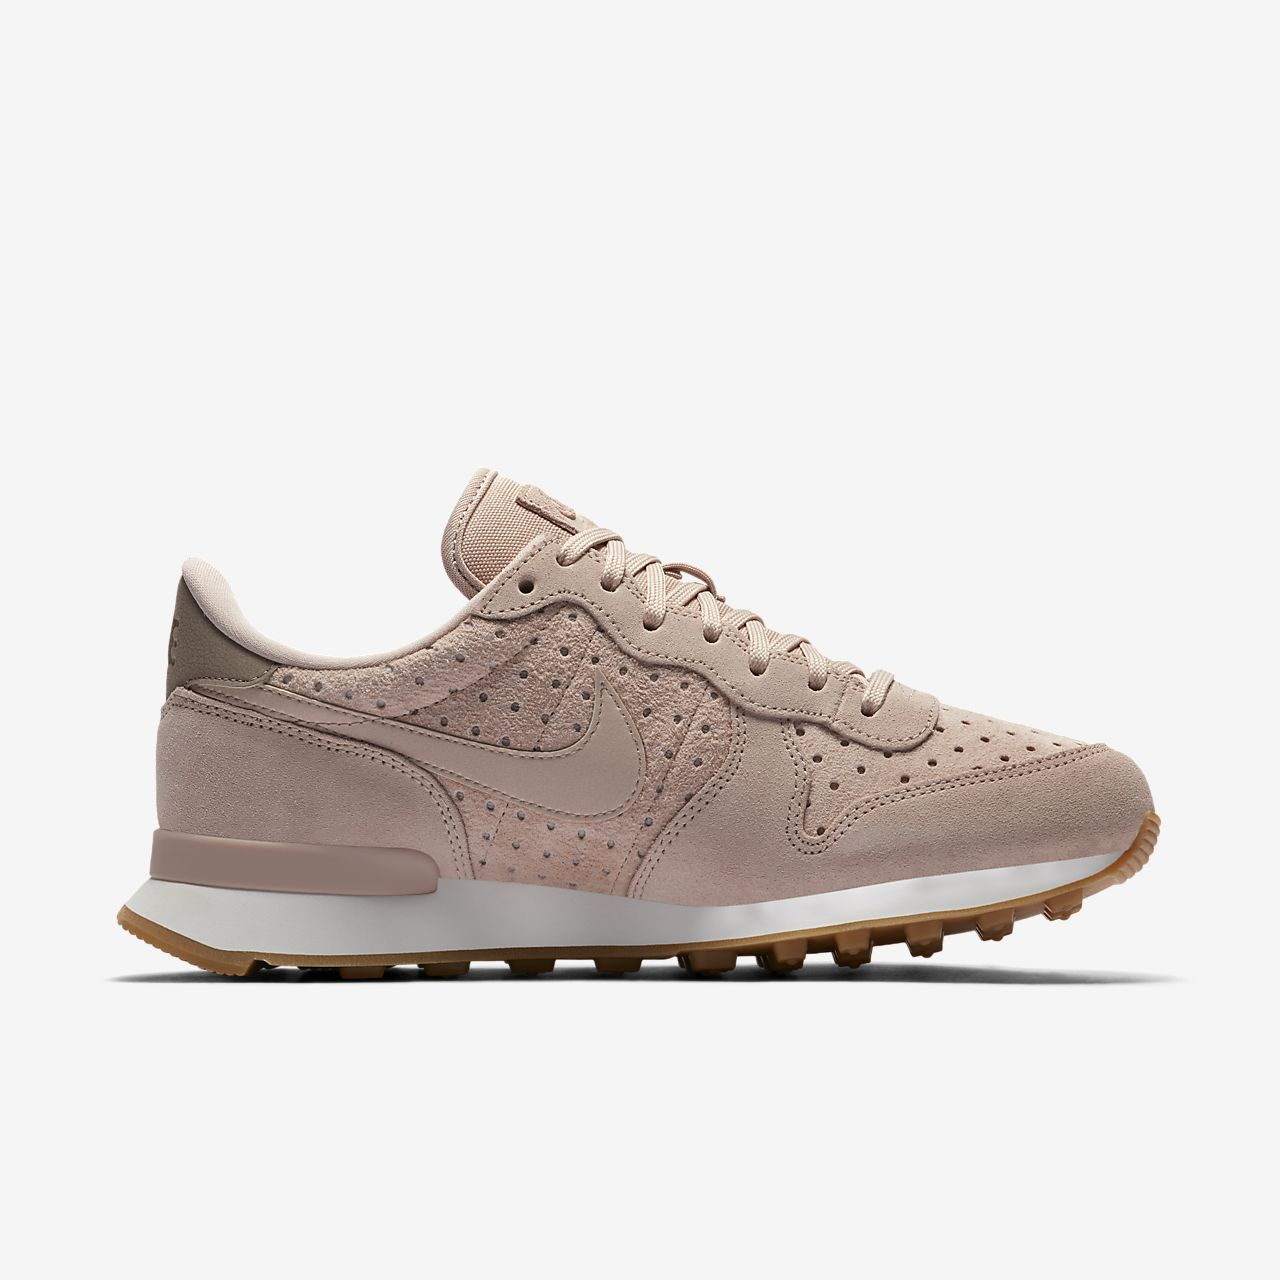 Nikebaskets Internationalist Premium